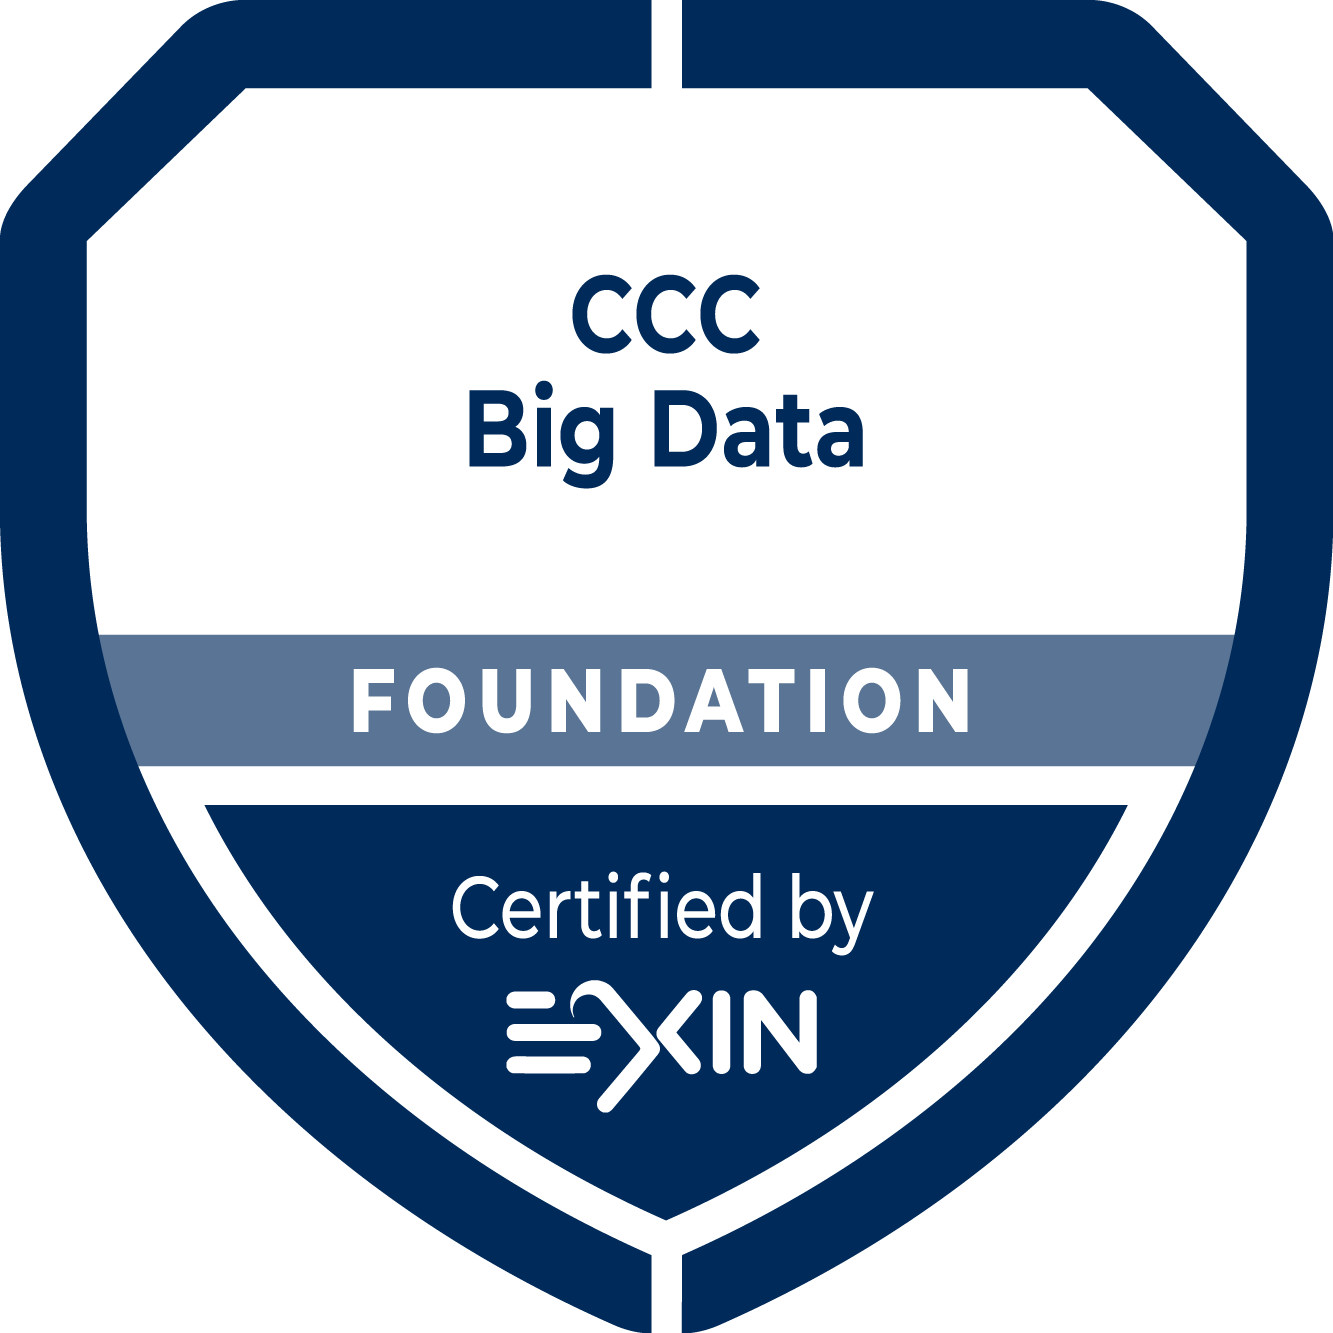 CCC Big Data Foundation